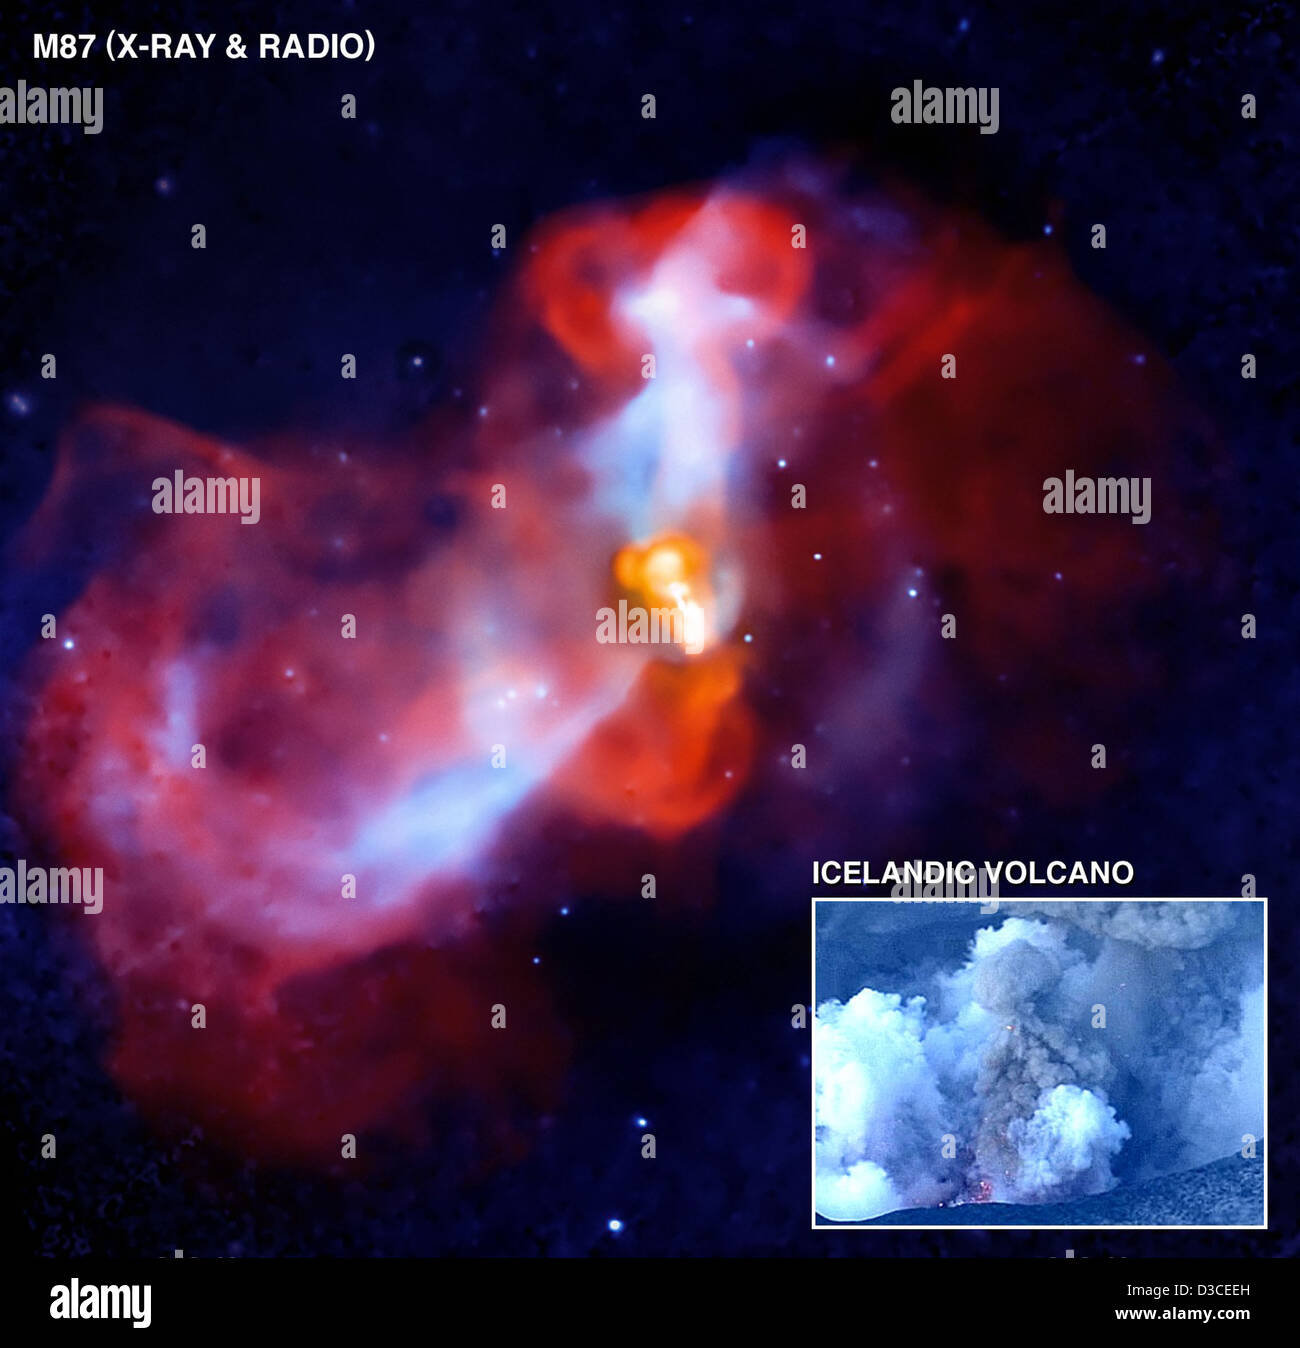 Galactic 'Super-Volcano' in Action (NASA, Chandra, 08/19/10) - Stock Image